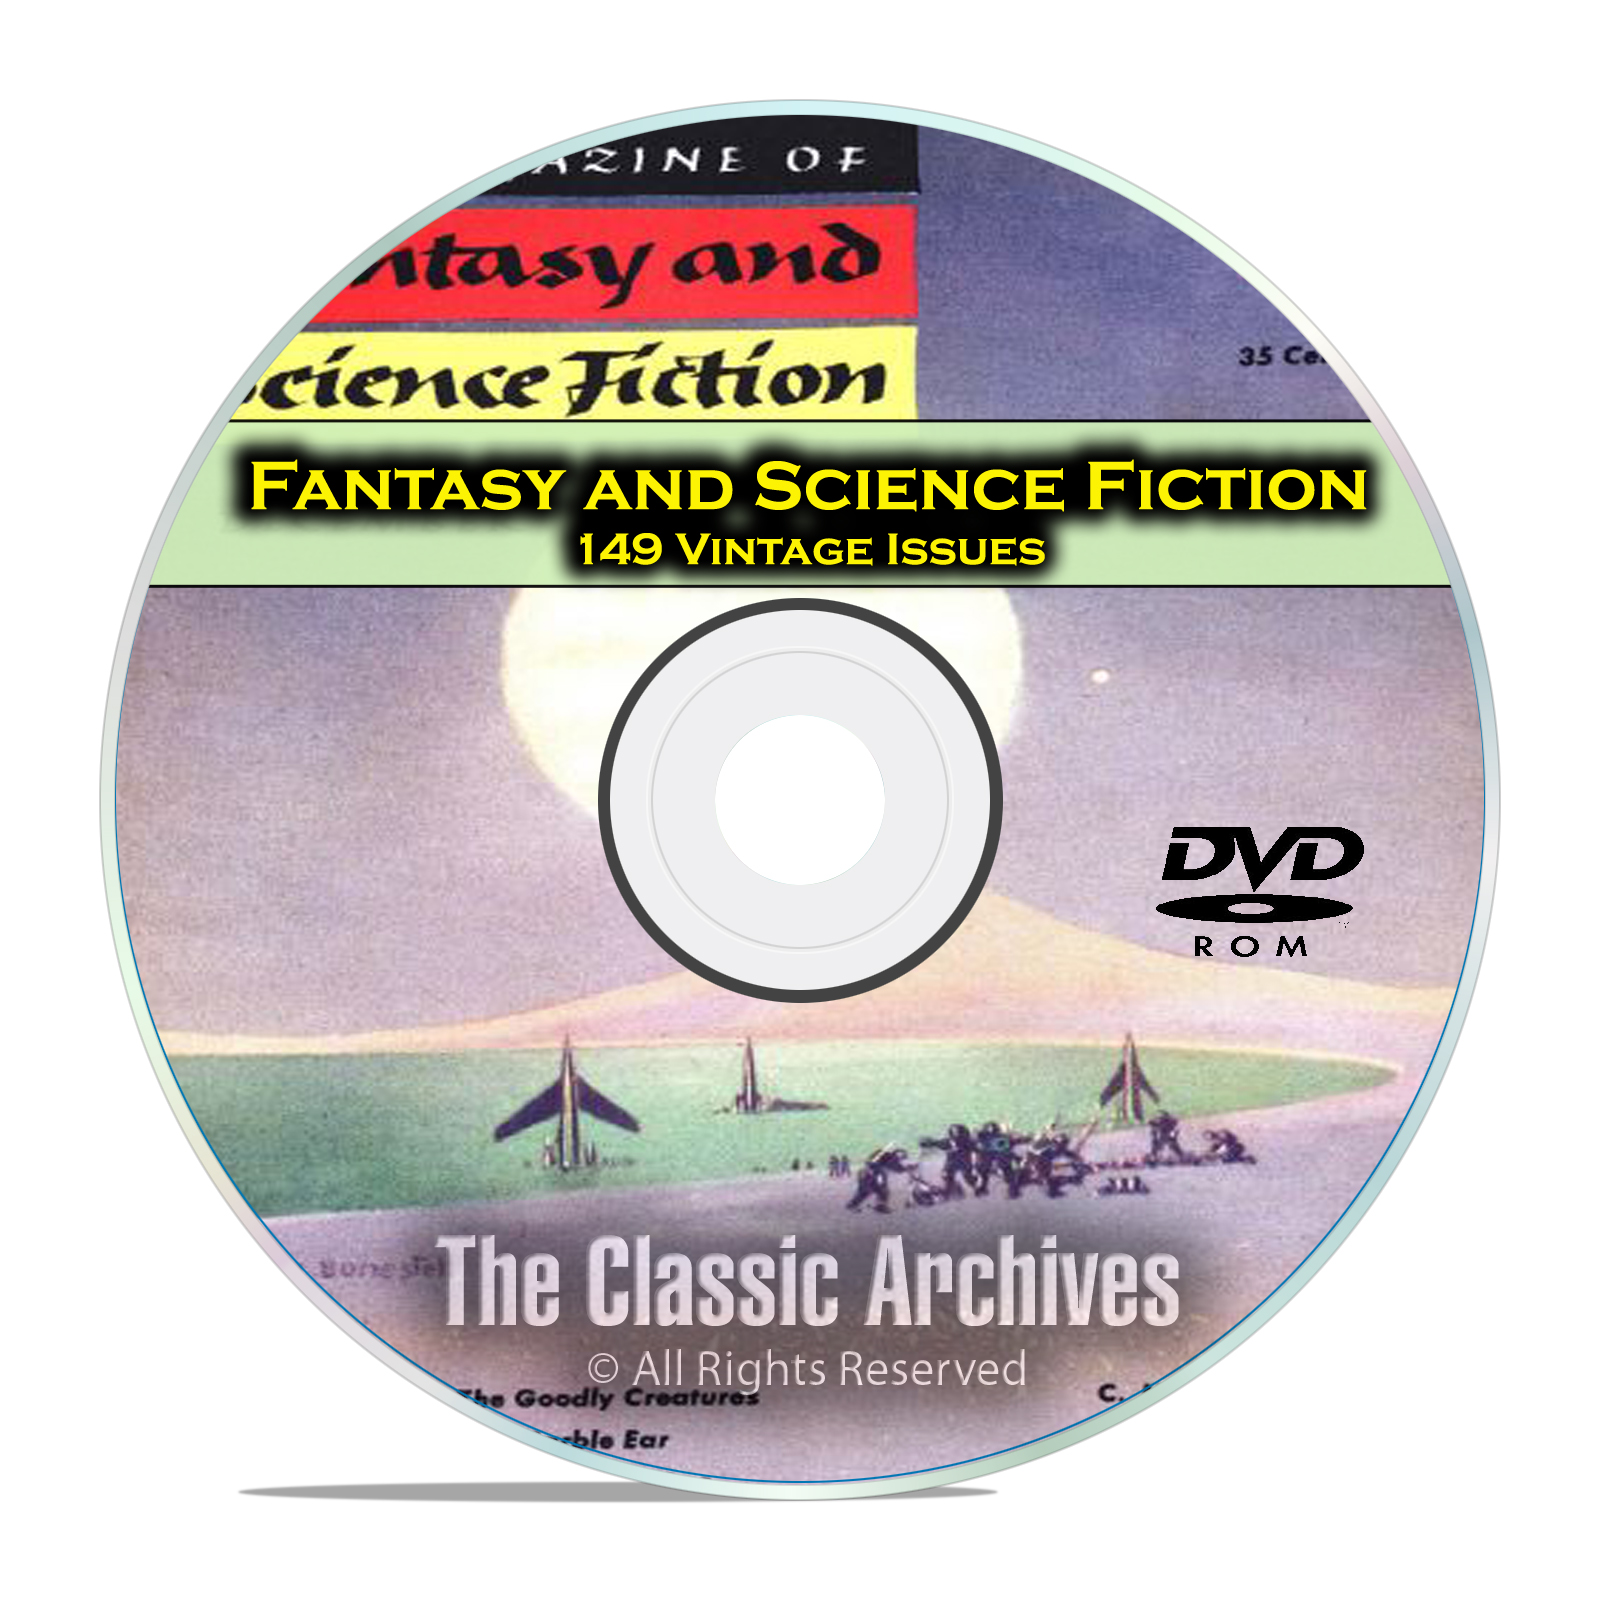 Fantasy & Science Fiction, 149 Vintage Pulp Magazine, Golden Age SCI FI DVD